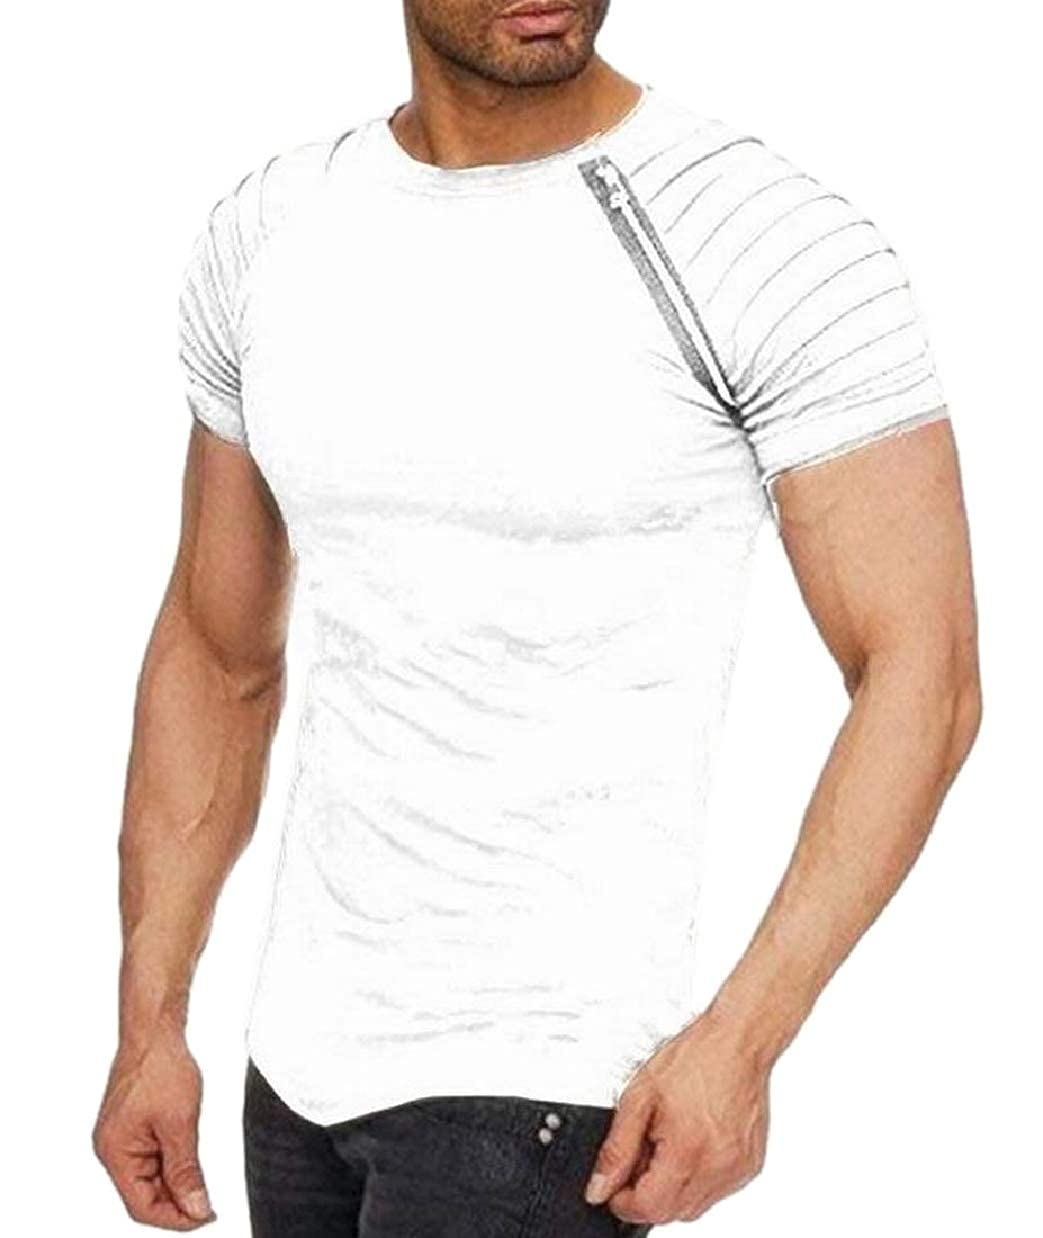 ZXFHZS Mens Zip-Up Solid Striped Raglan Sleeves Lounge Frill Top Shirt